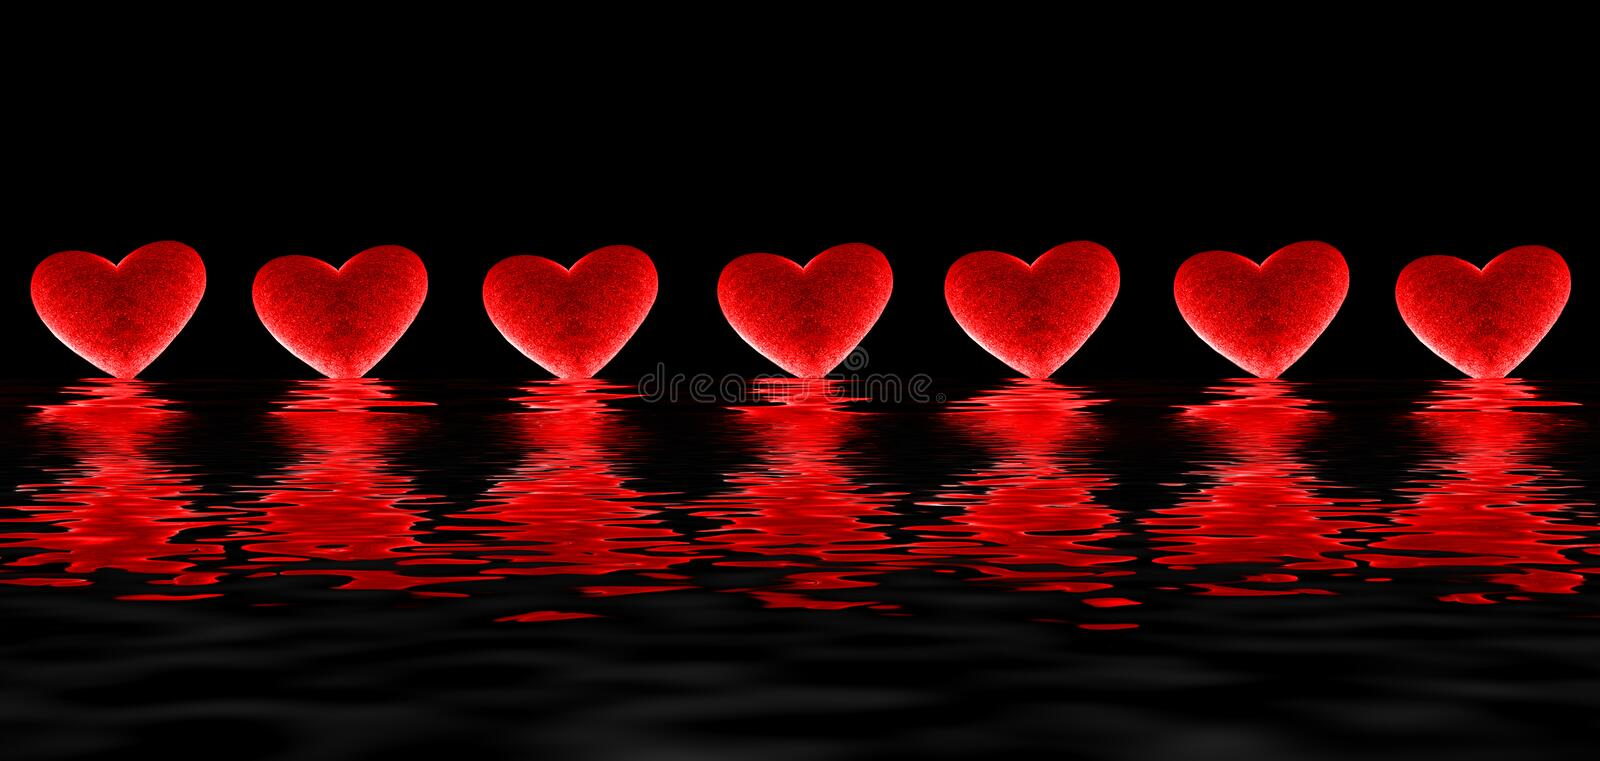 Bleeding Hearts. Glowing, floating, bleeding red hearts with water ripples reflections below all on a black background to make a unique conceptual background stock illustration